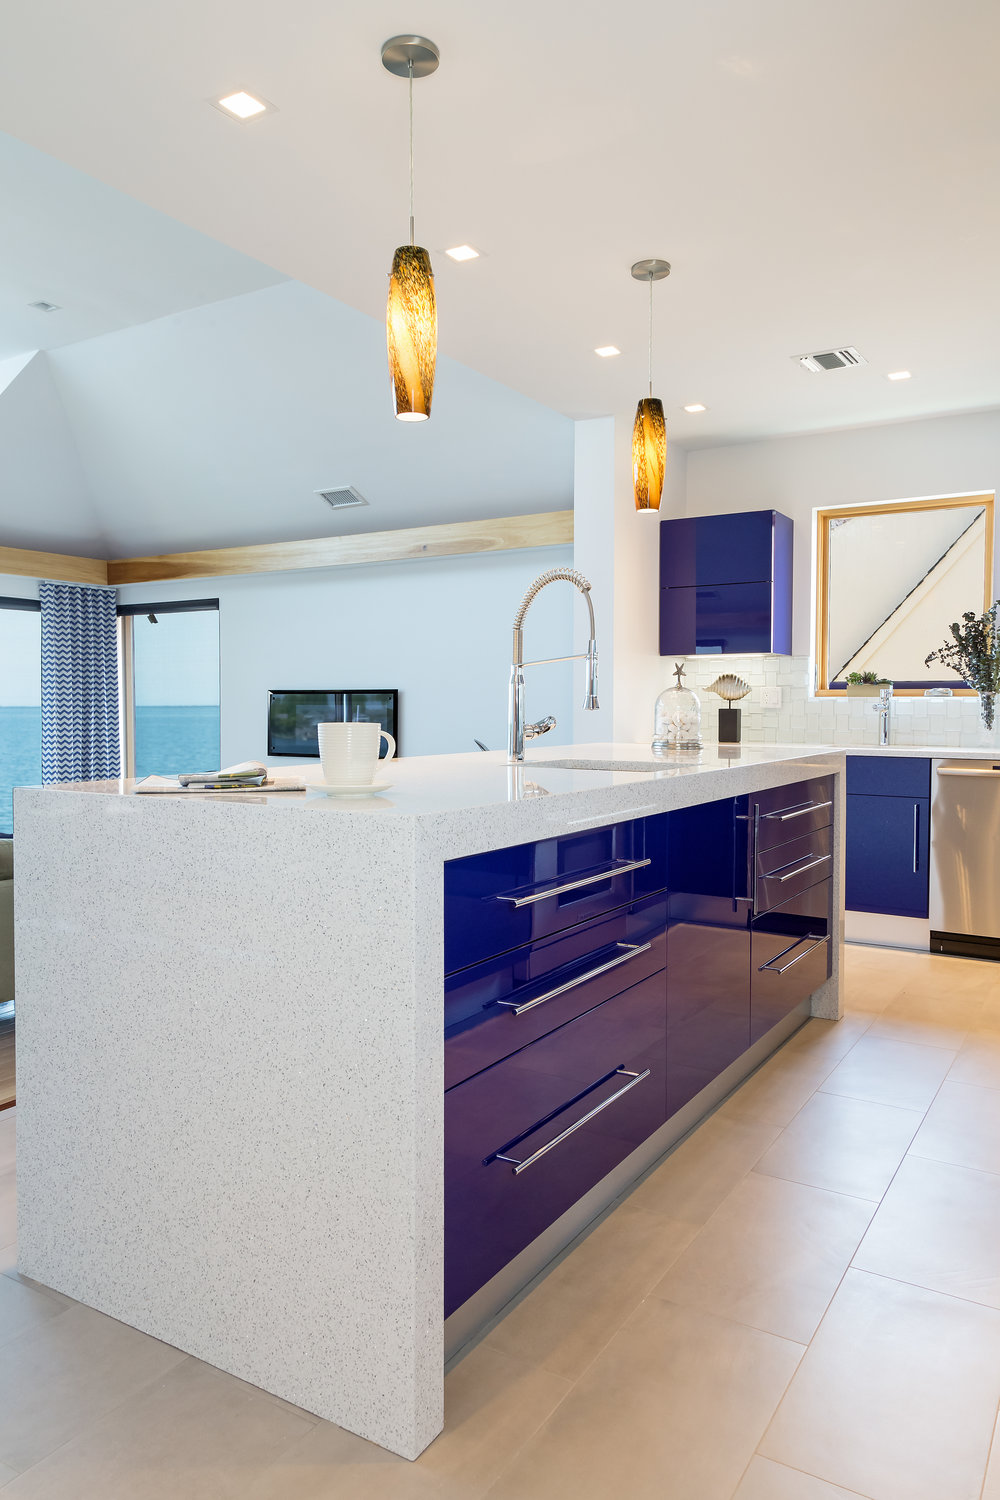 Contemporary style kitchen with two pendant light fixture